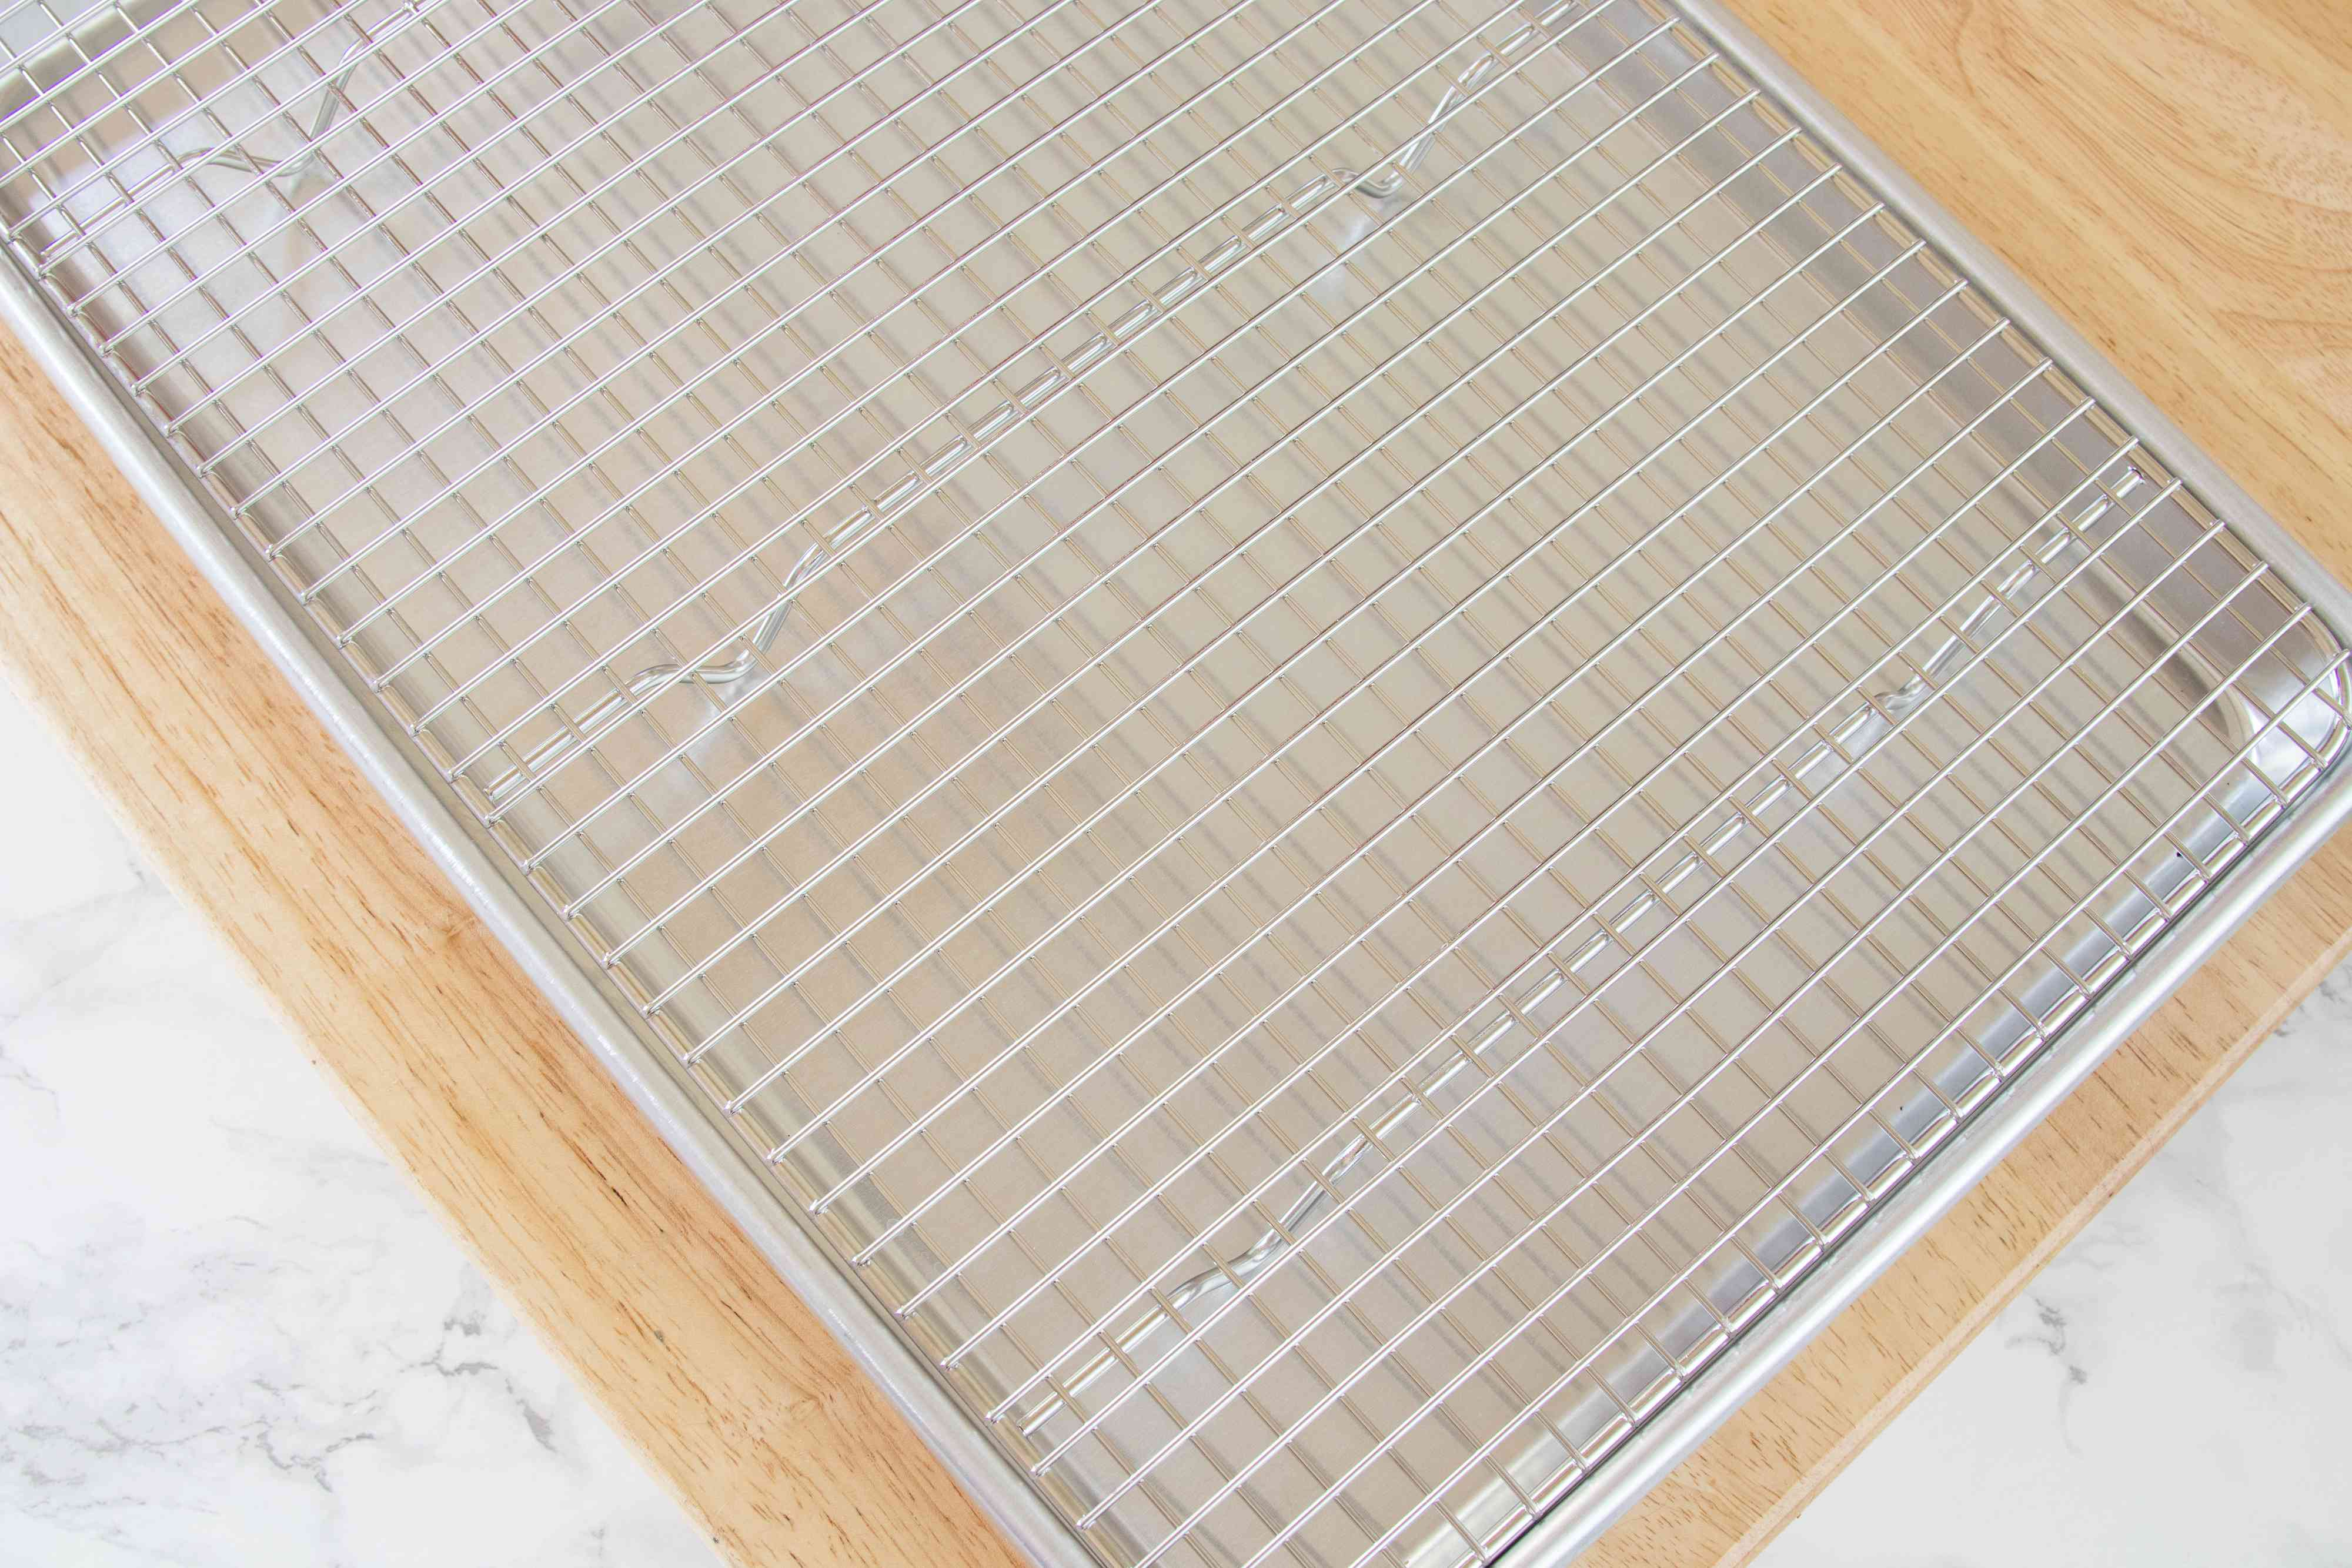 Baking sheet fitted with a wire rack